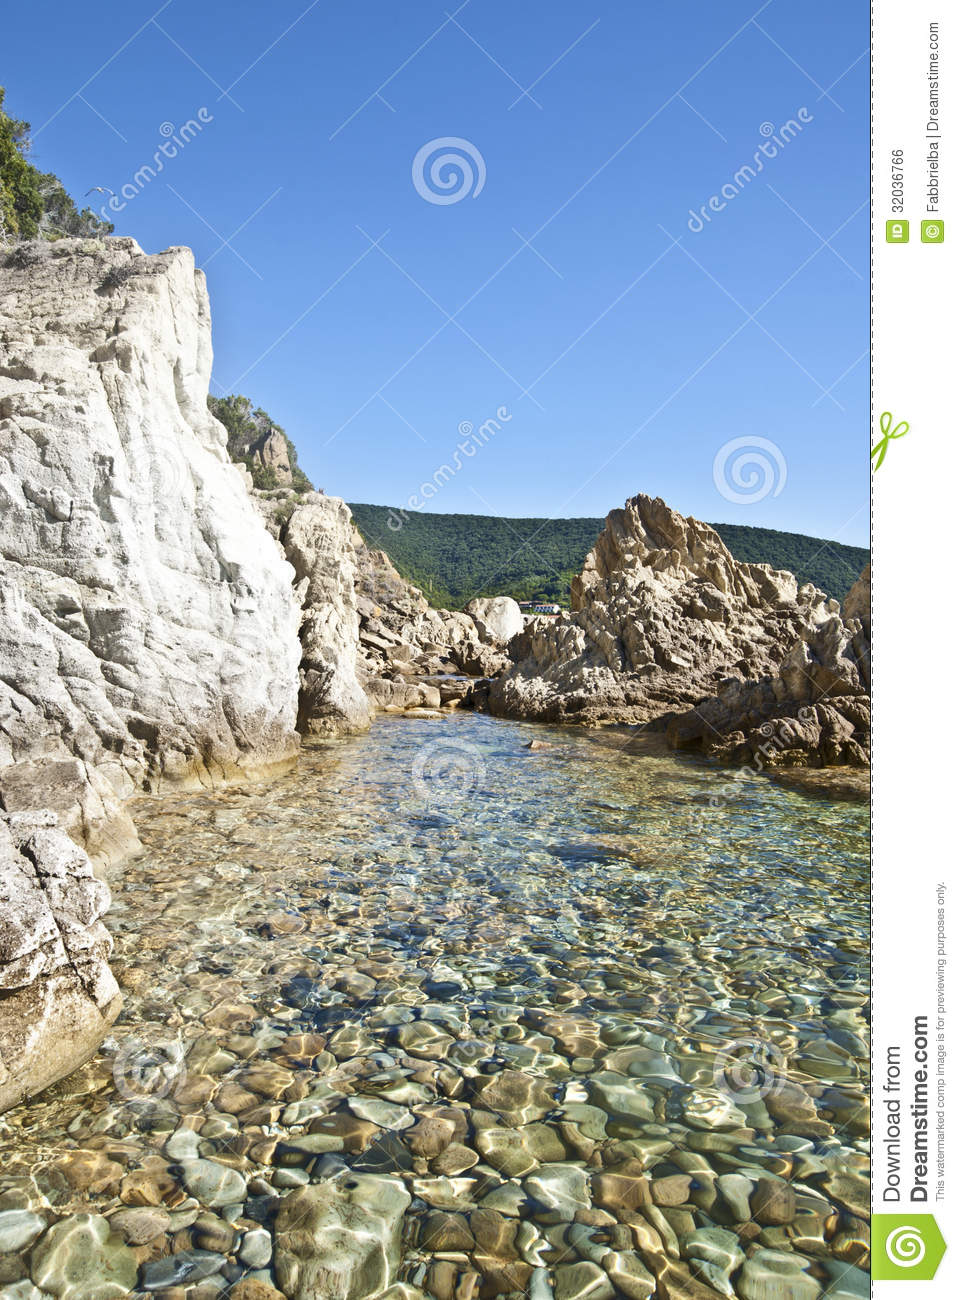 Piscina Naturale Royalty Free Stock Image  Image 32036766